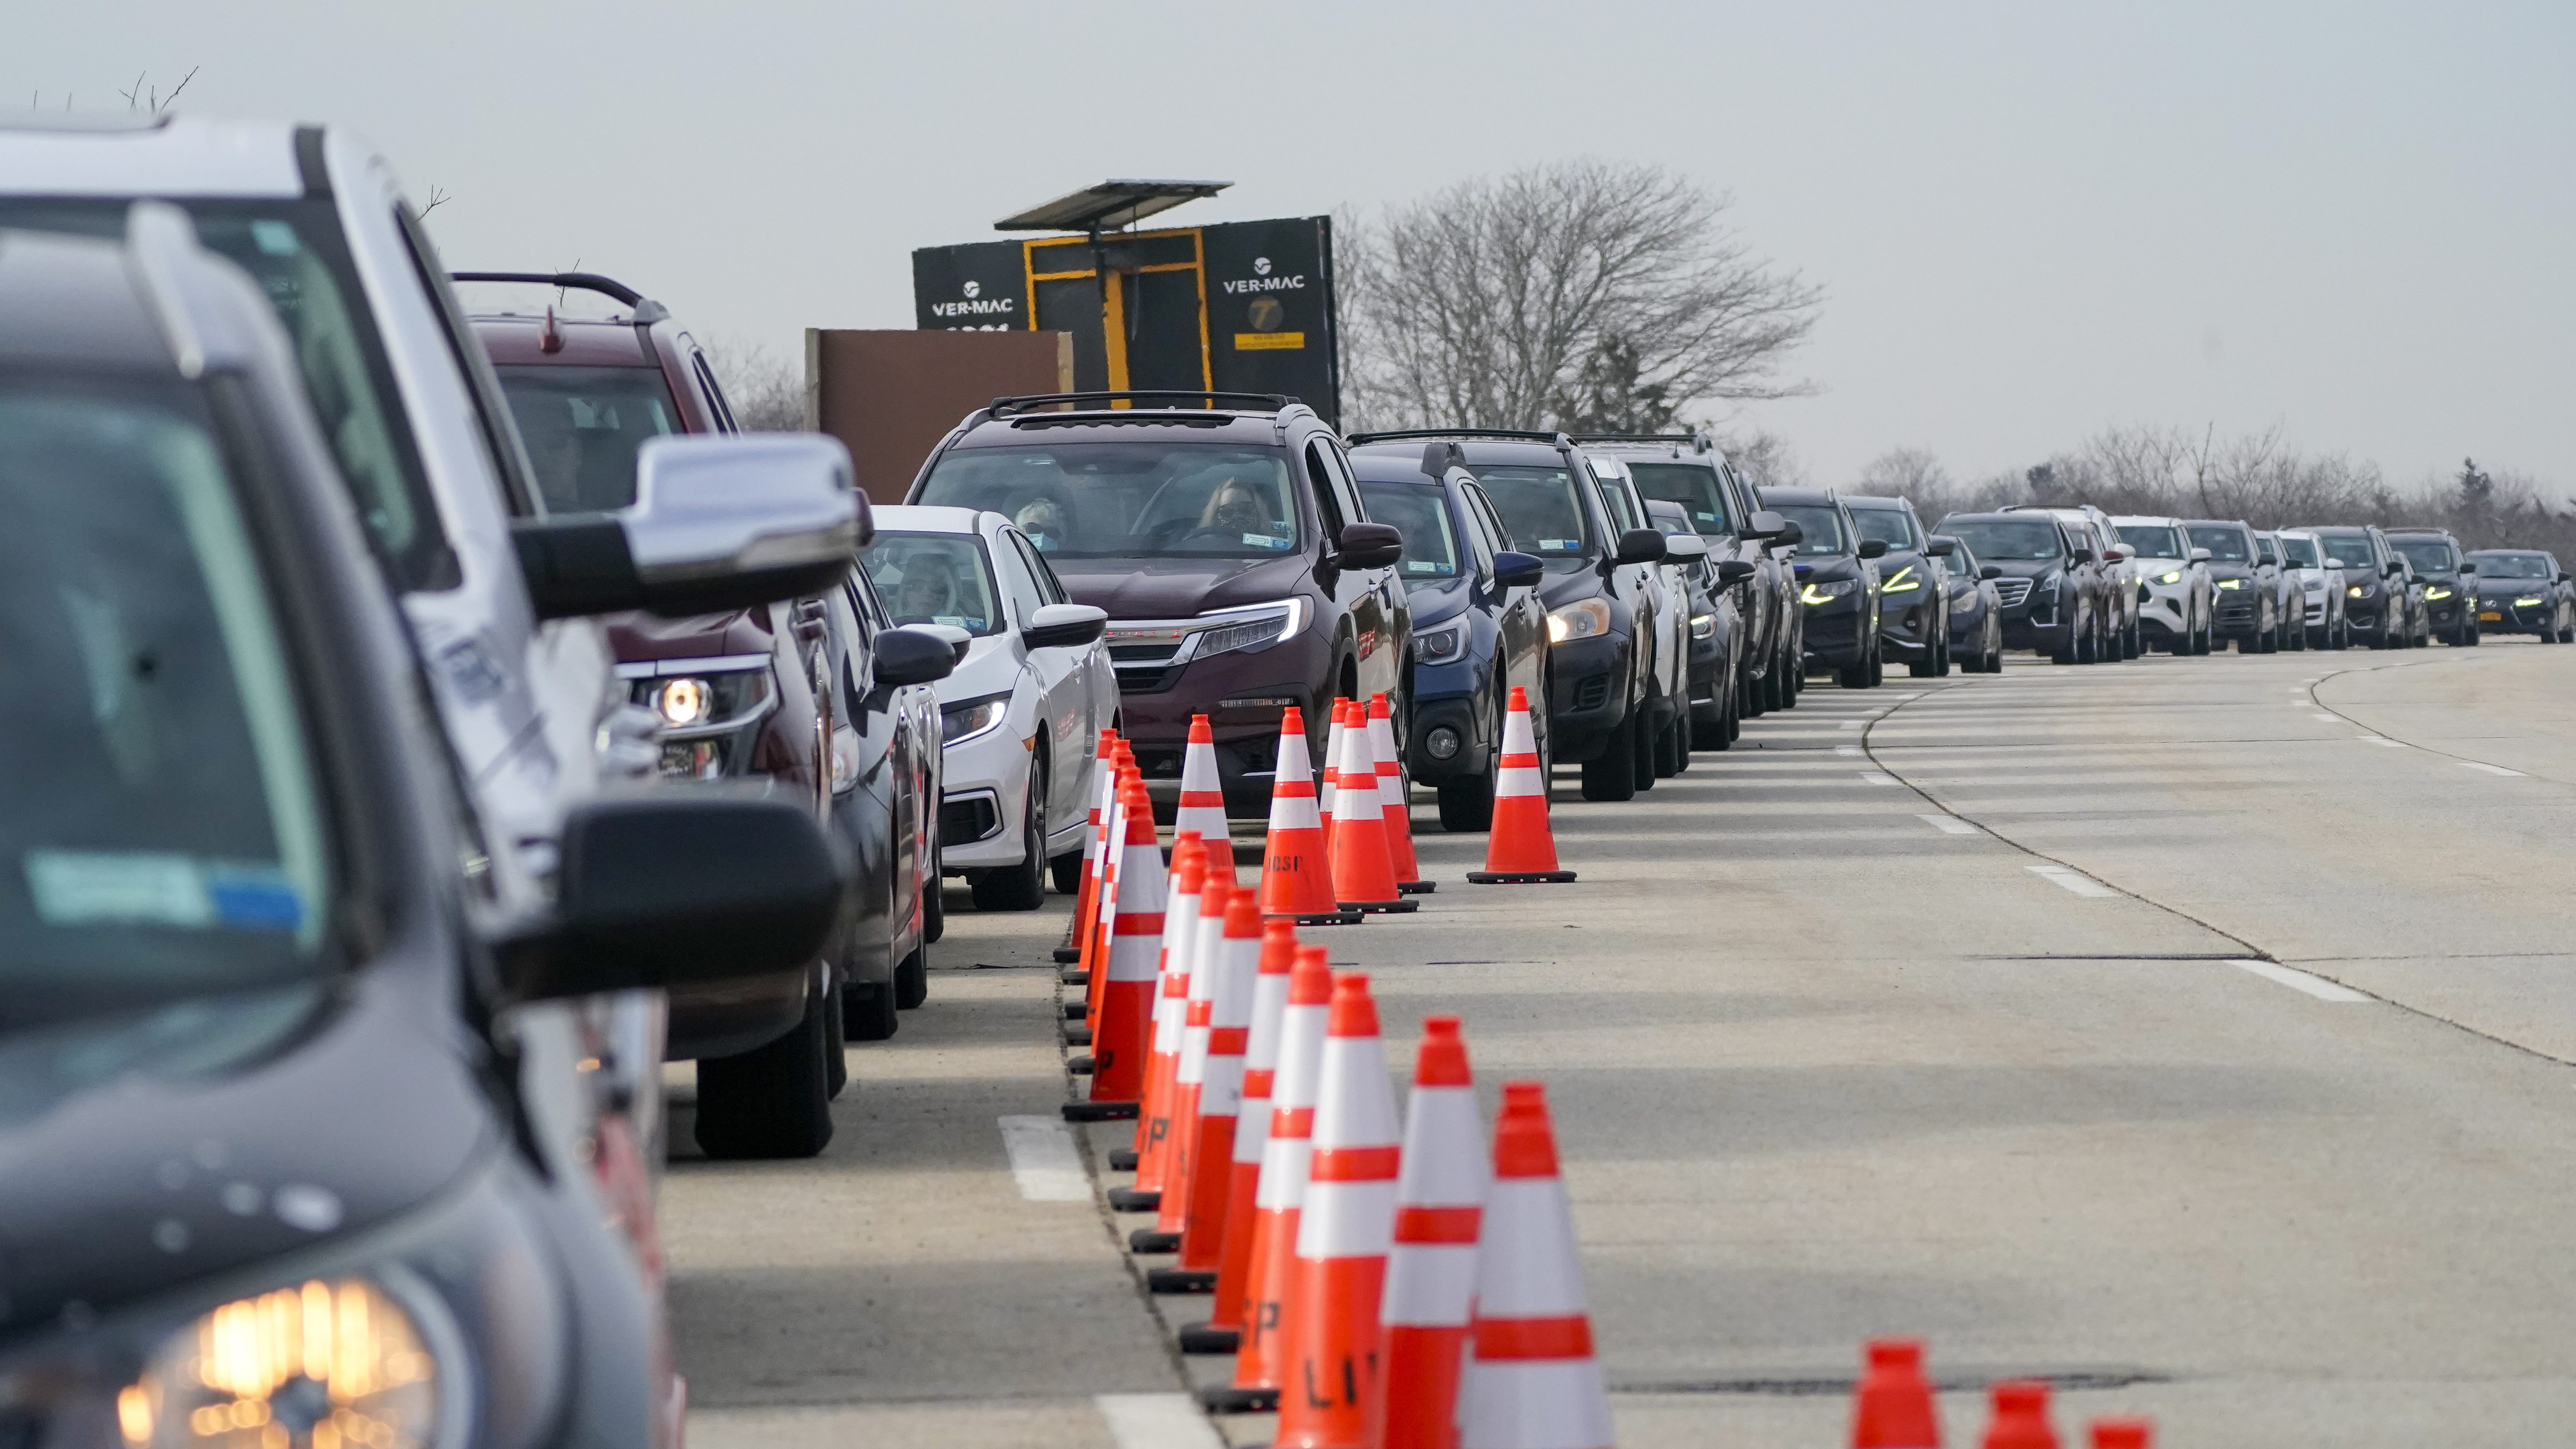 Cars line up in Wantagh, NY for the covid-19 drive-through vaccination site.